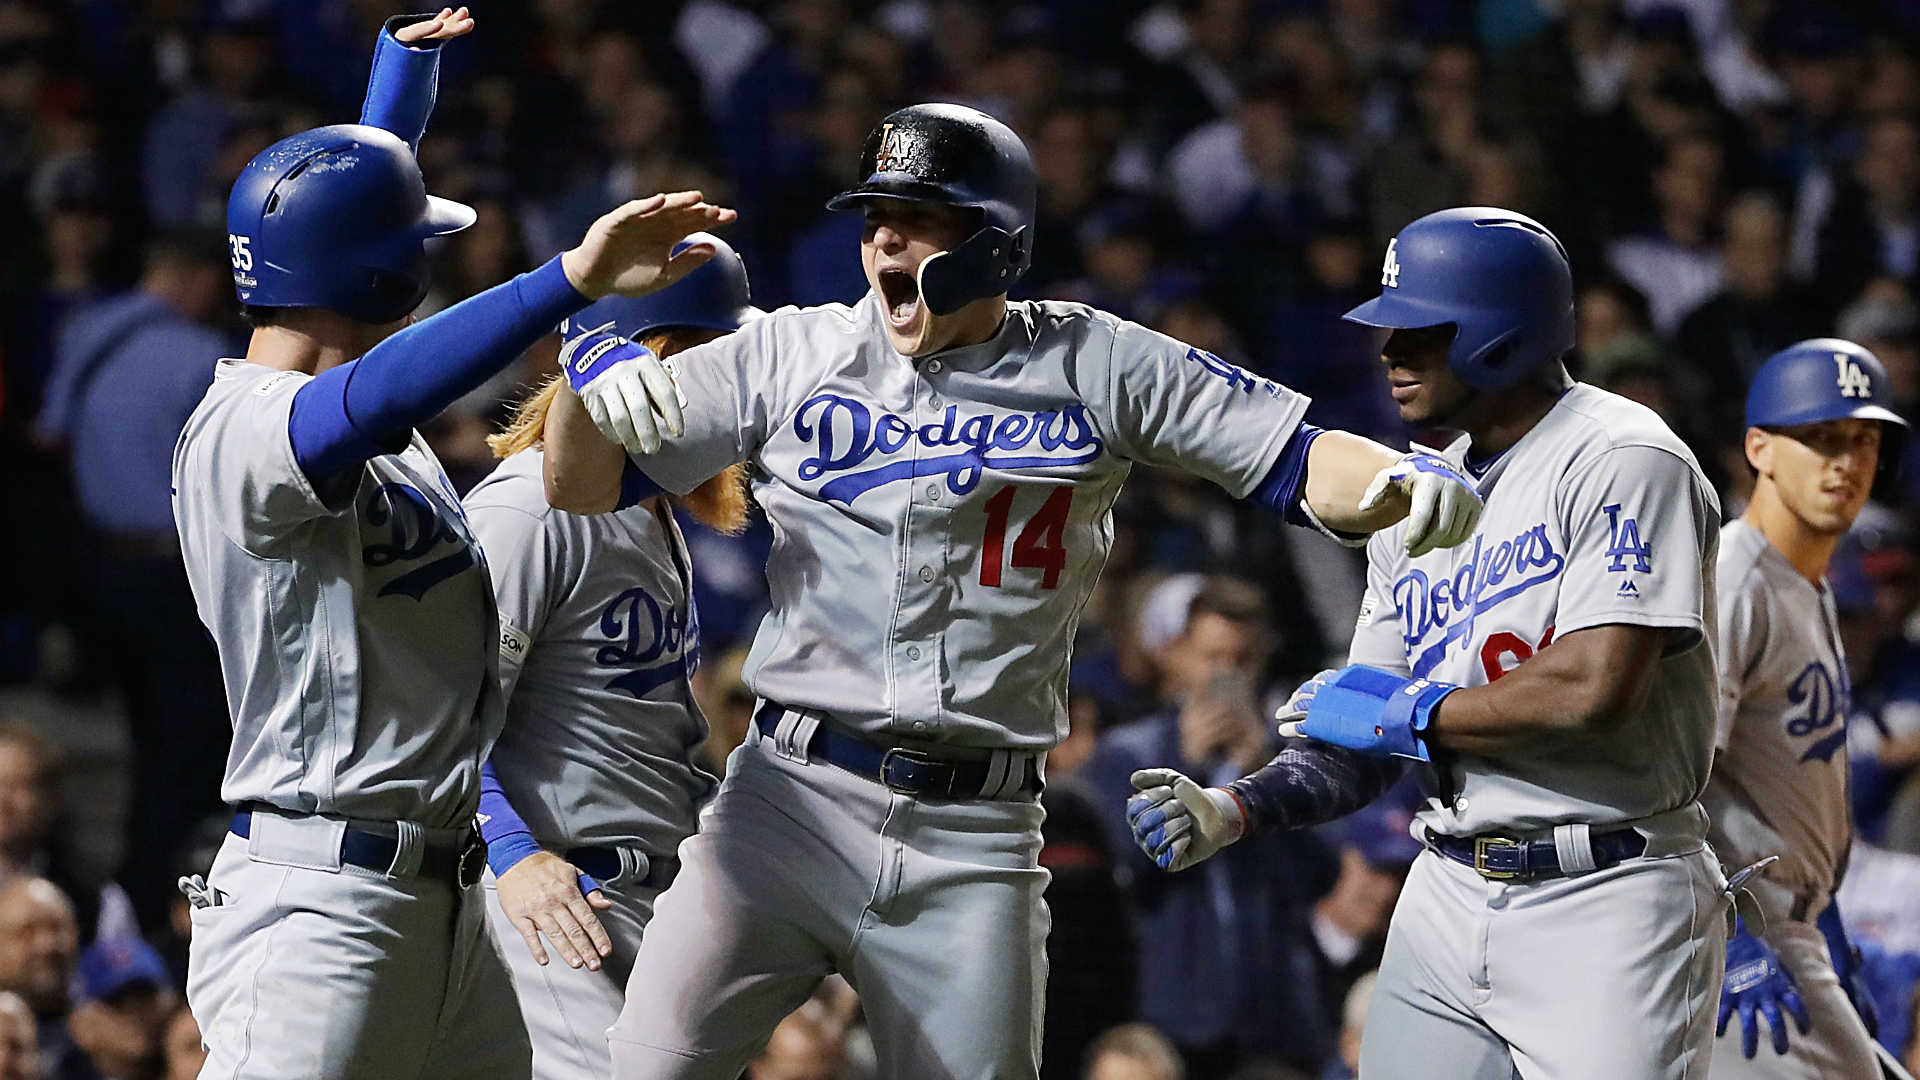 Dodgers Head to World Series for First Time Since 1988